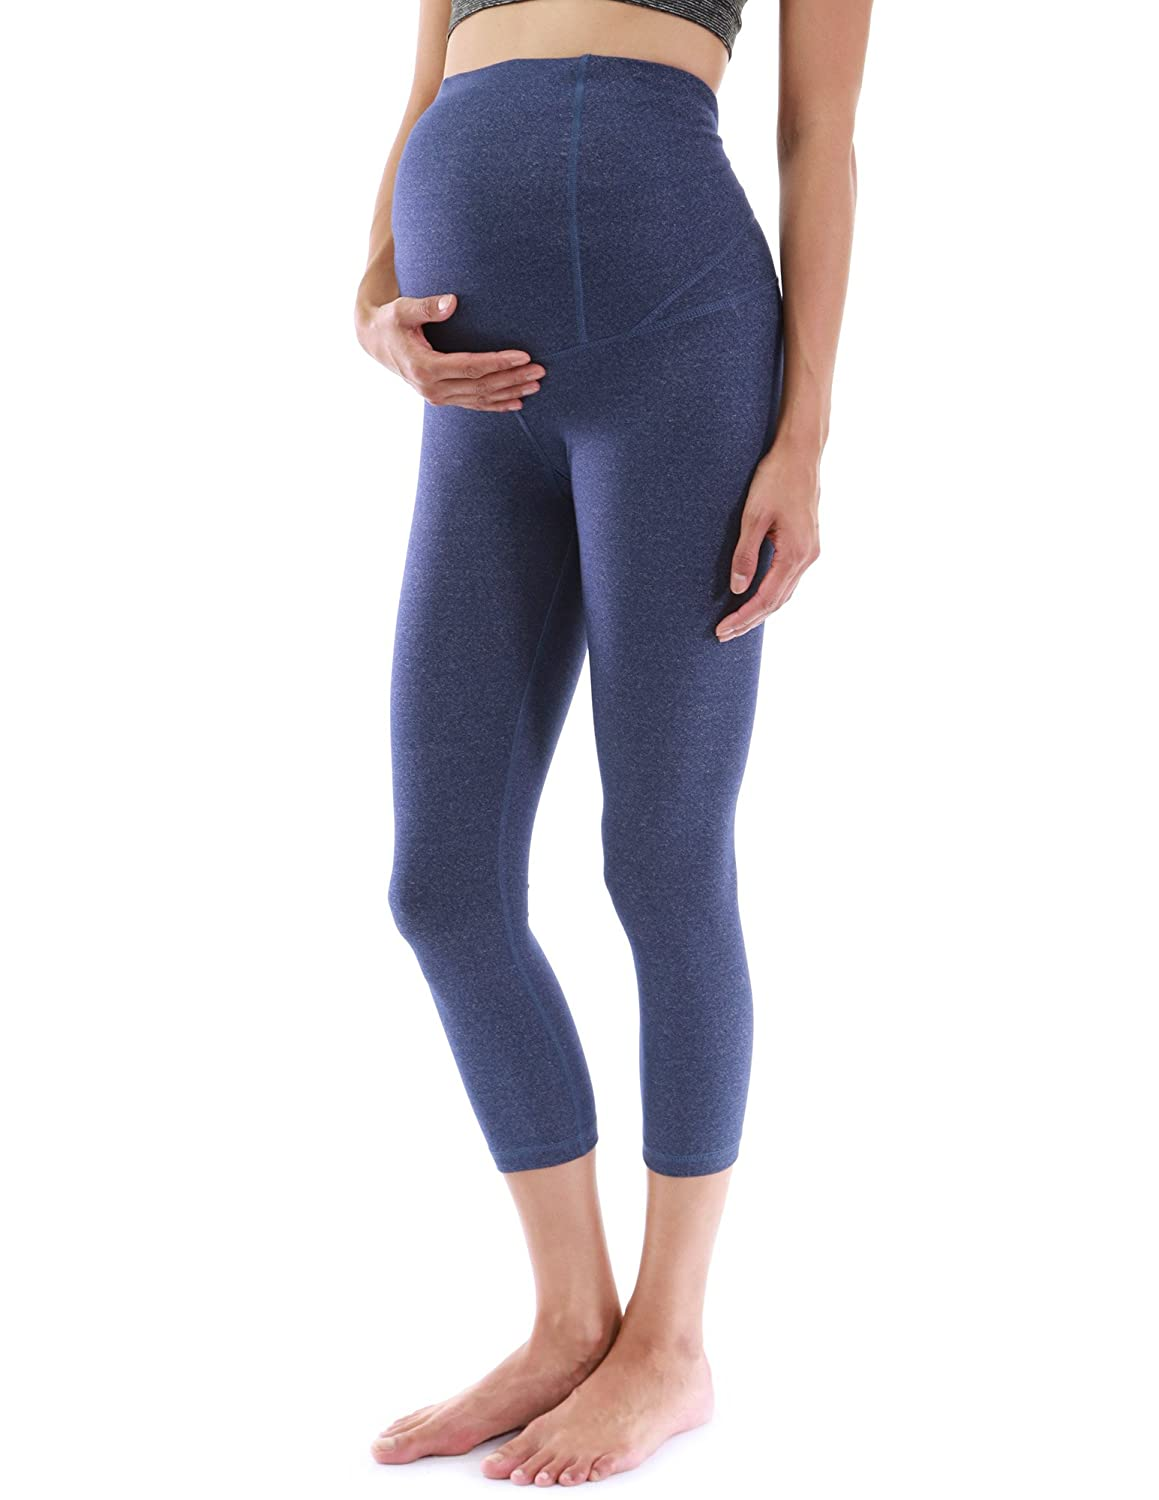 PattyBoutik Mama Shaping Series Maternity Crop Legging Yoga Pants